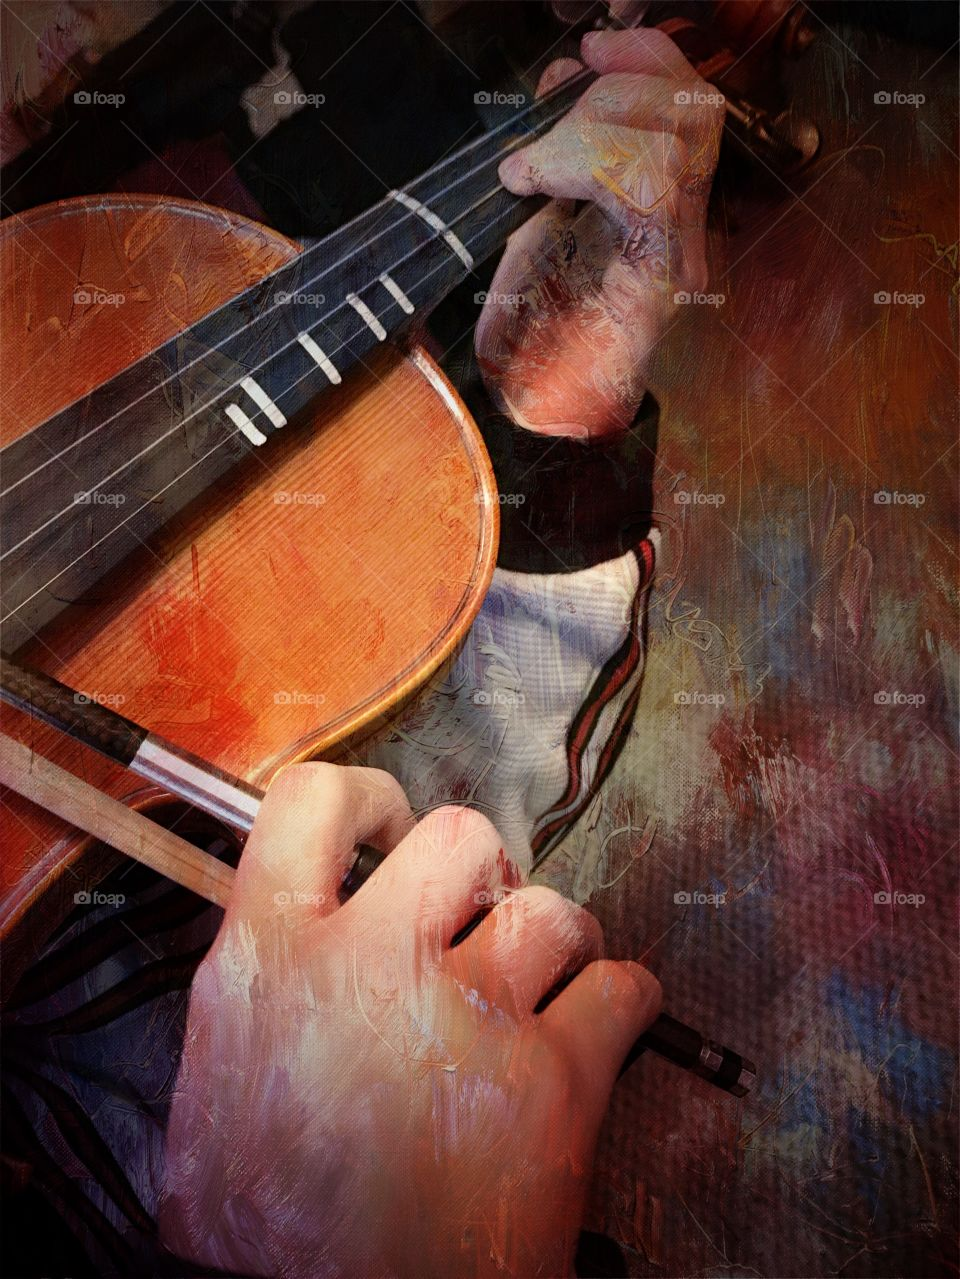 Working hands and violin painting effect